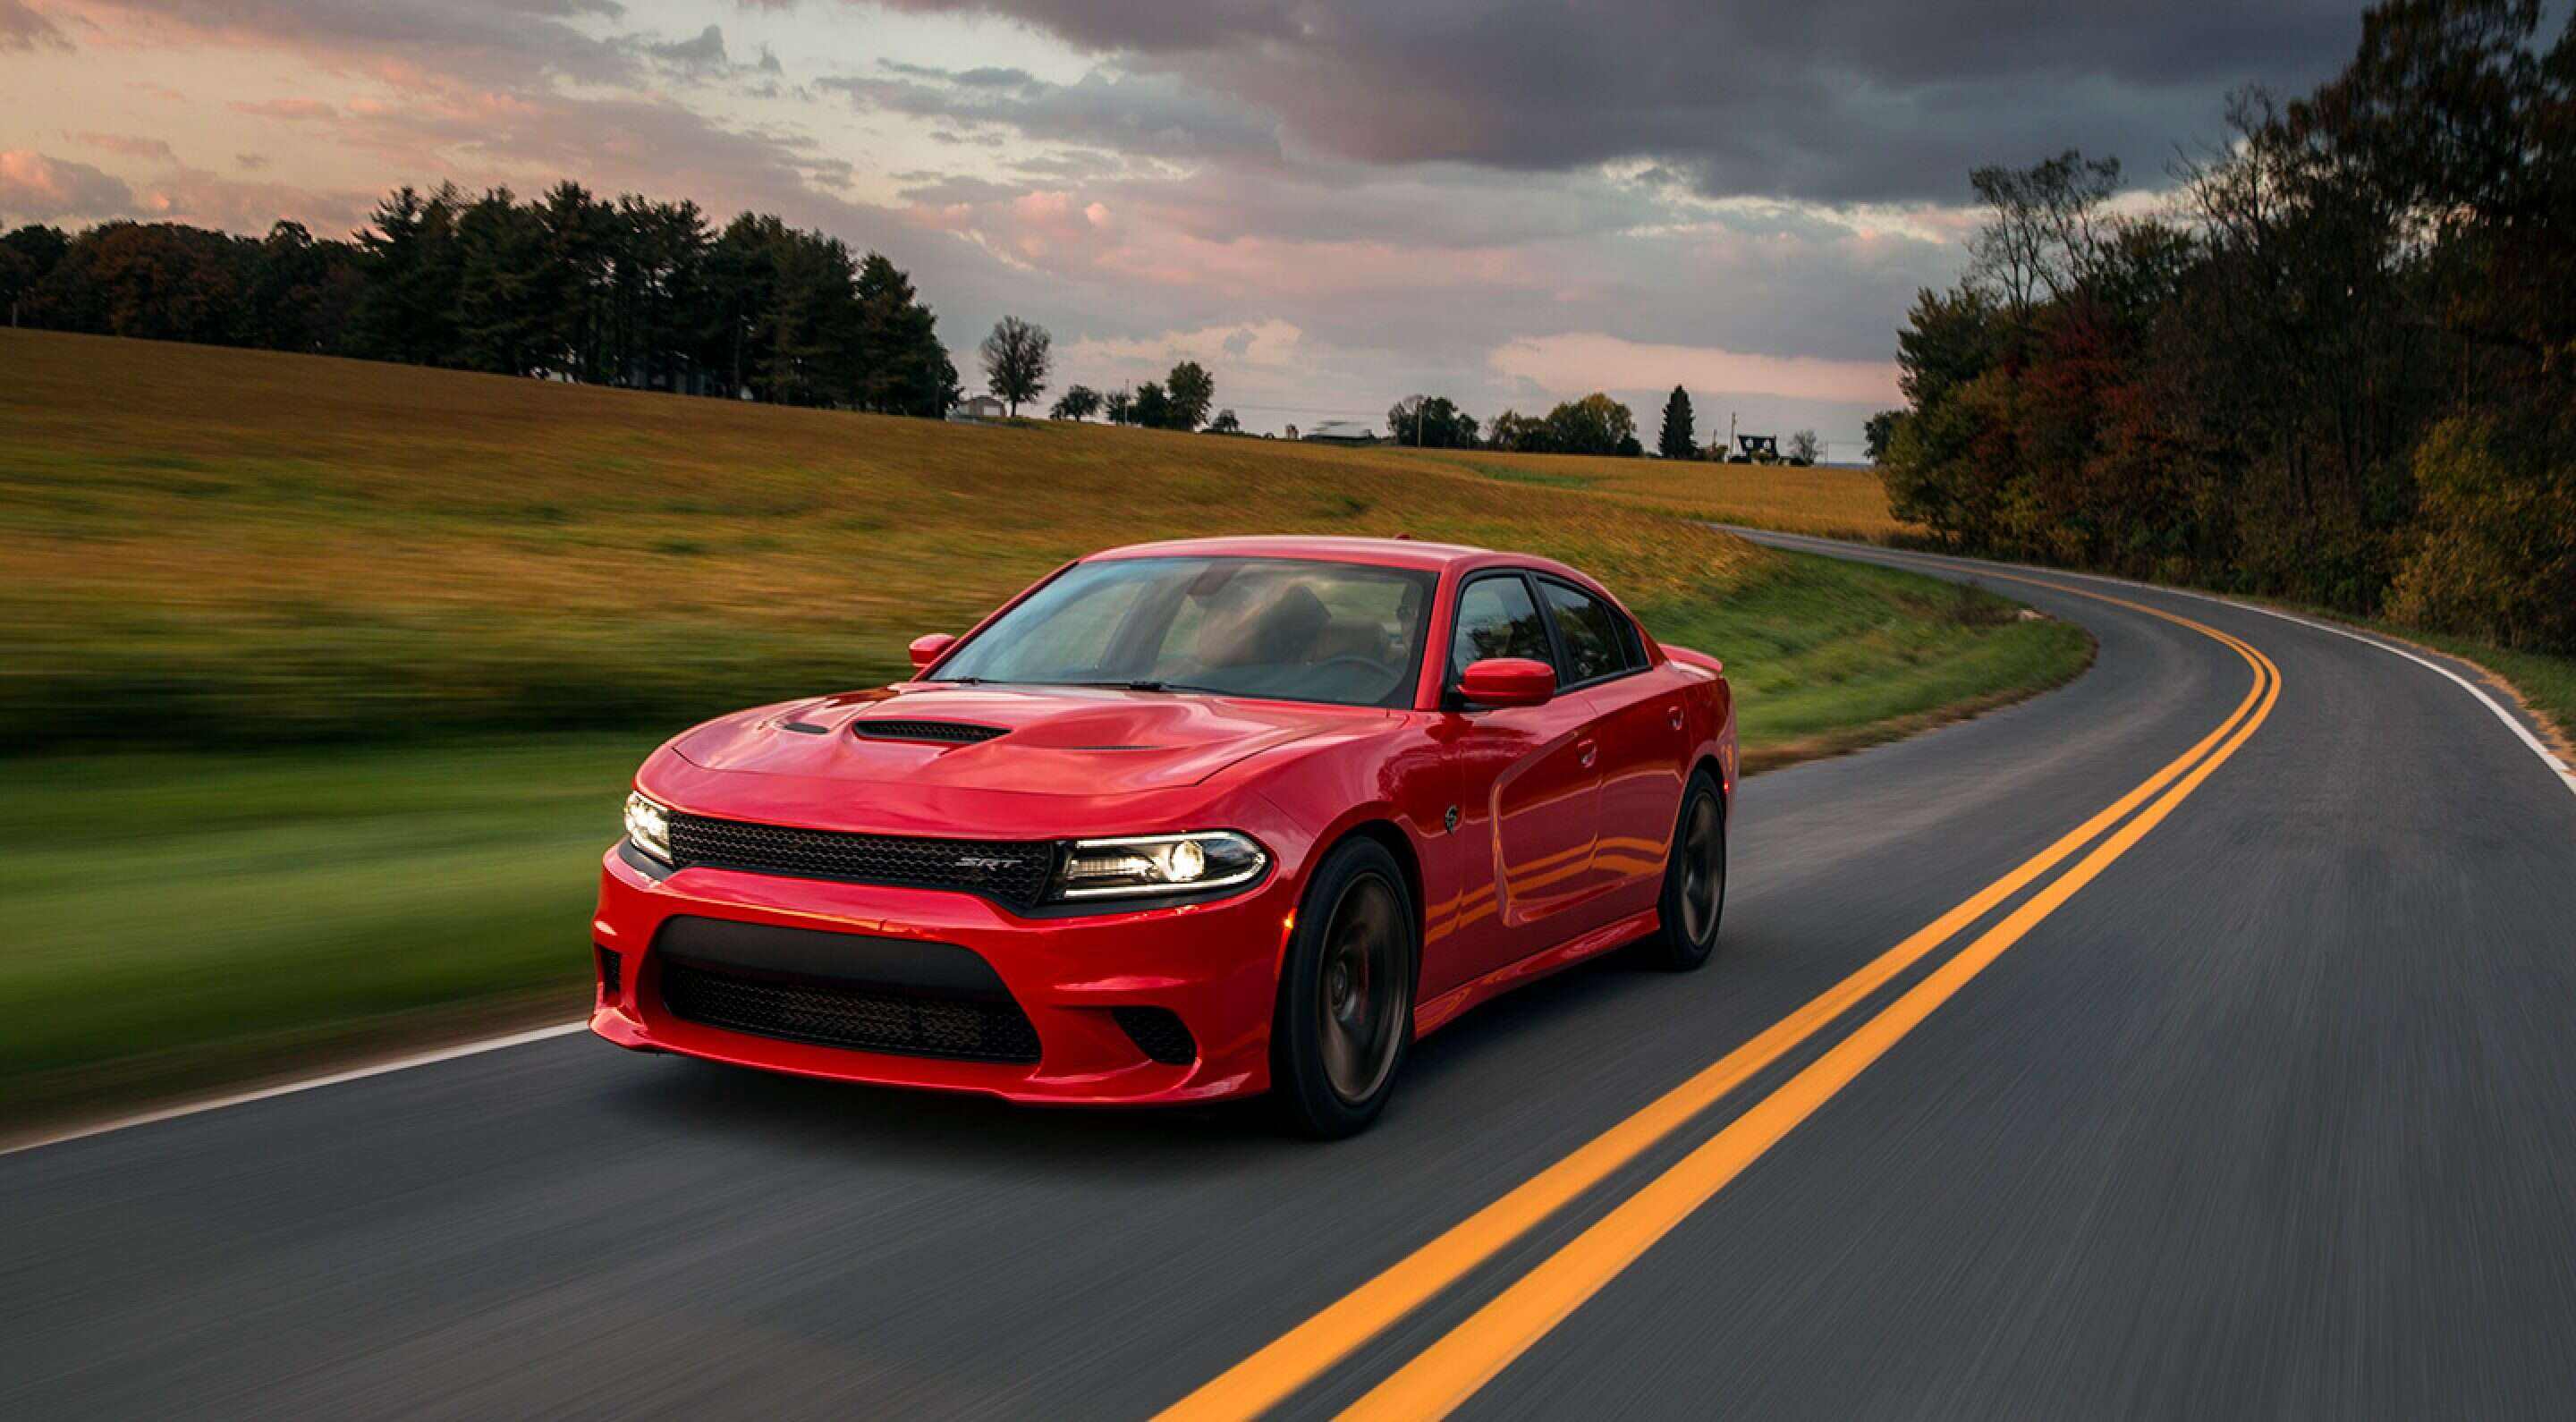 hellcat date srt autobaltika com and dodge release charger redesigns price